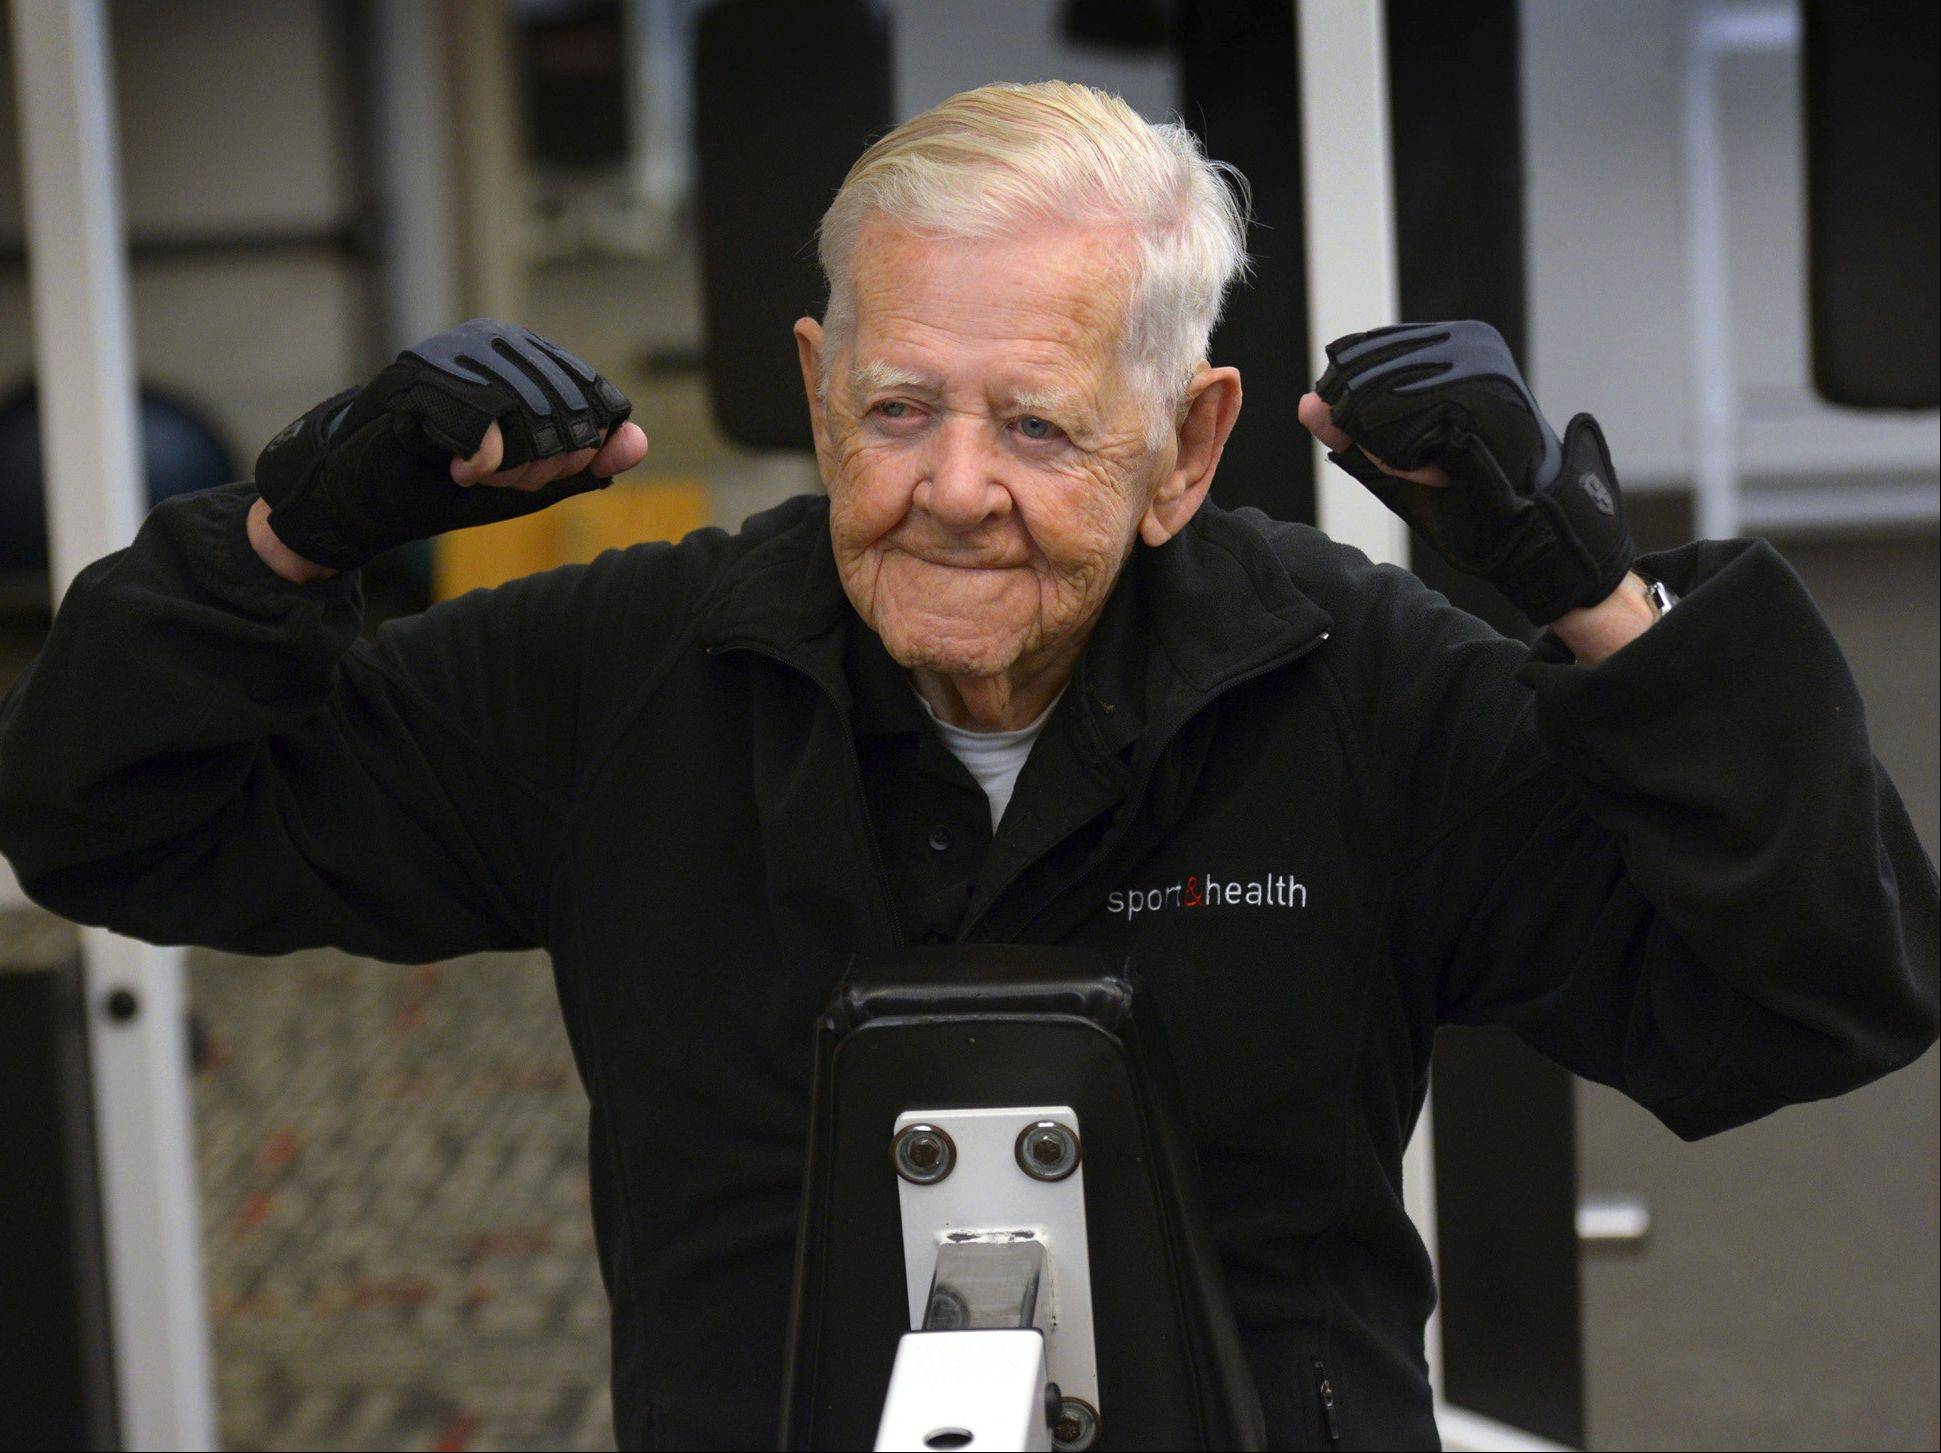 102-year-old Ray Clark benefits from weekly workouts